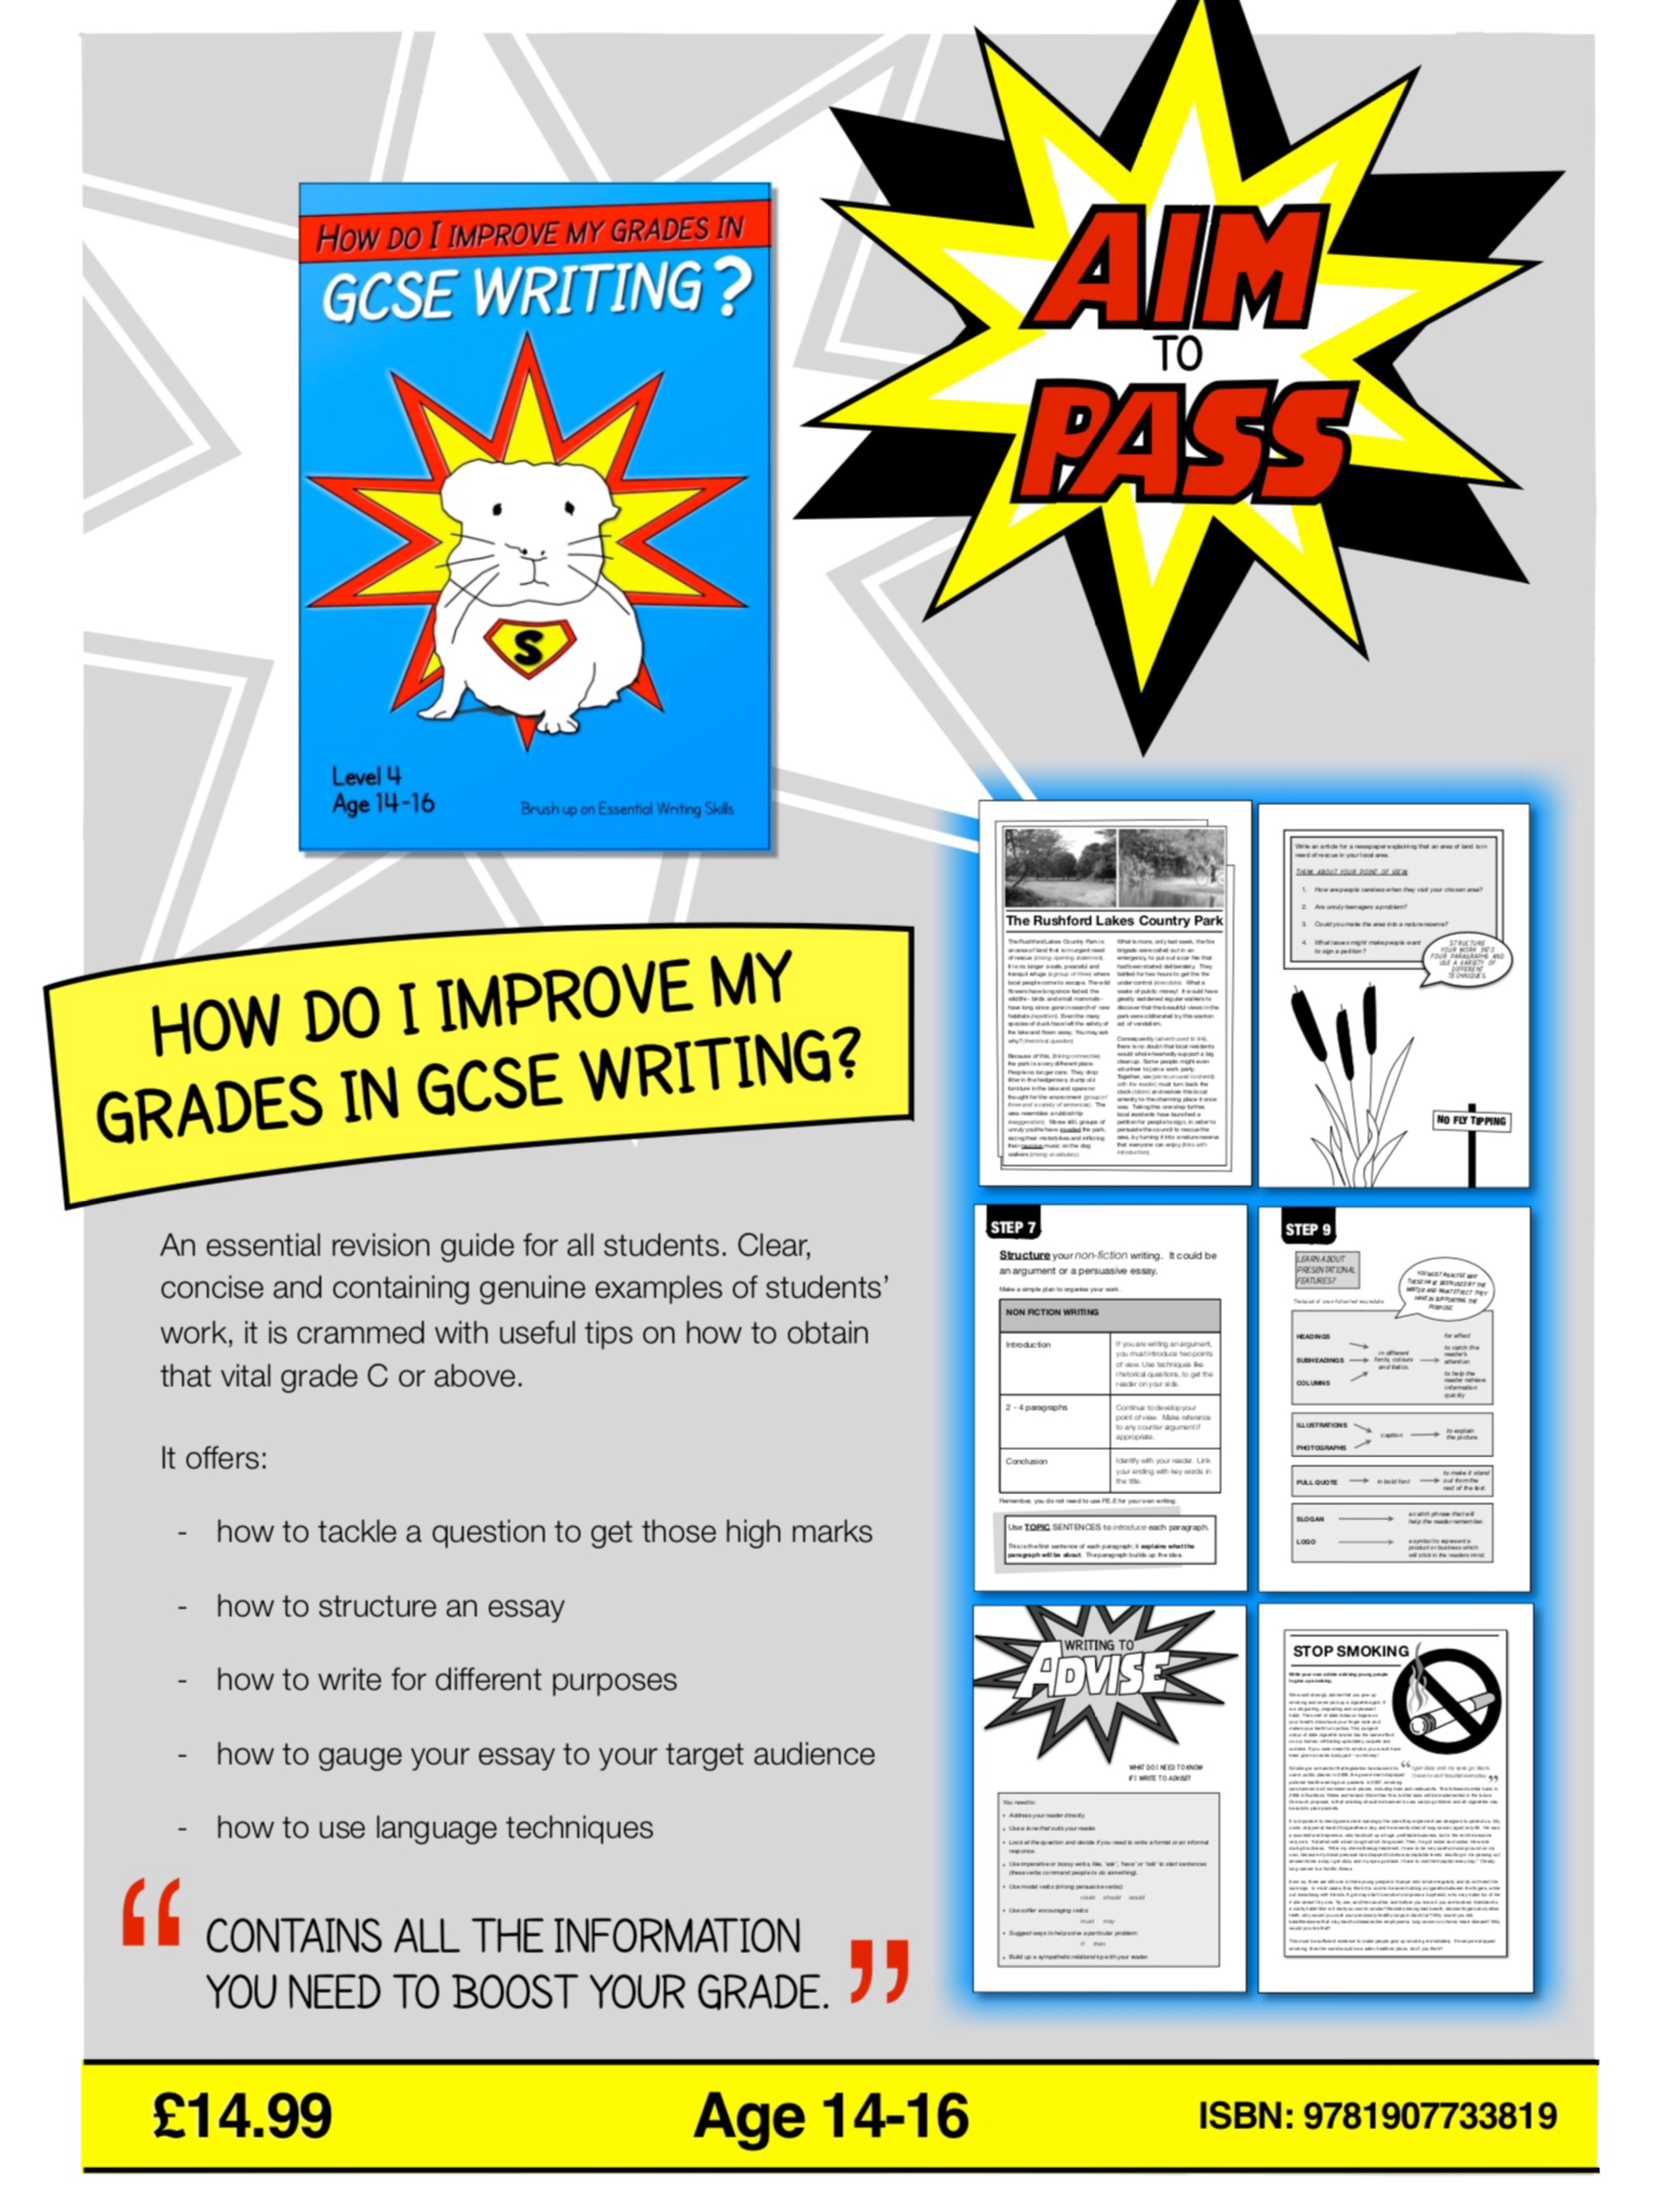 PART 1: How Do I Improve My Grades In GCSE English? (14-16 years)